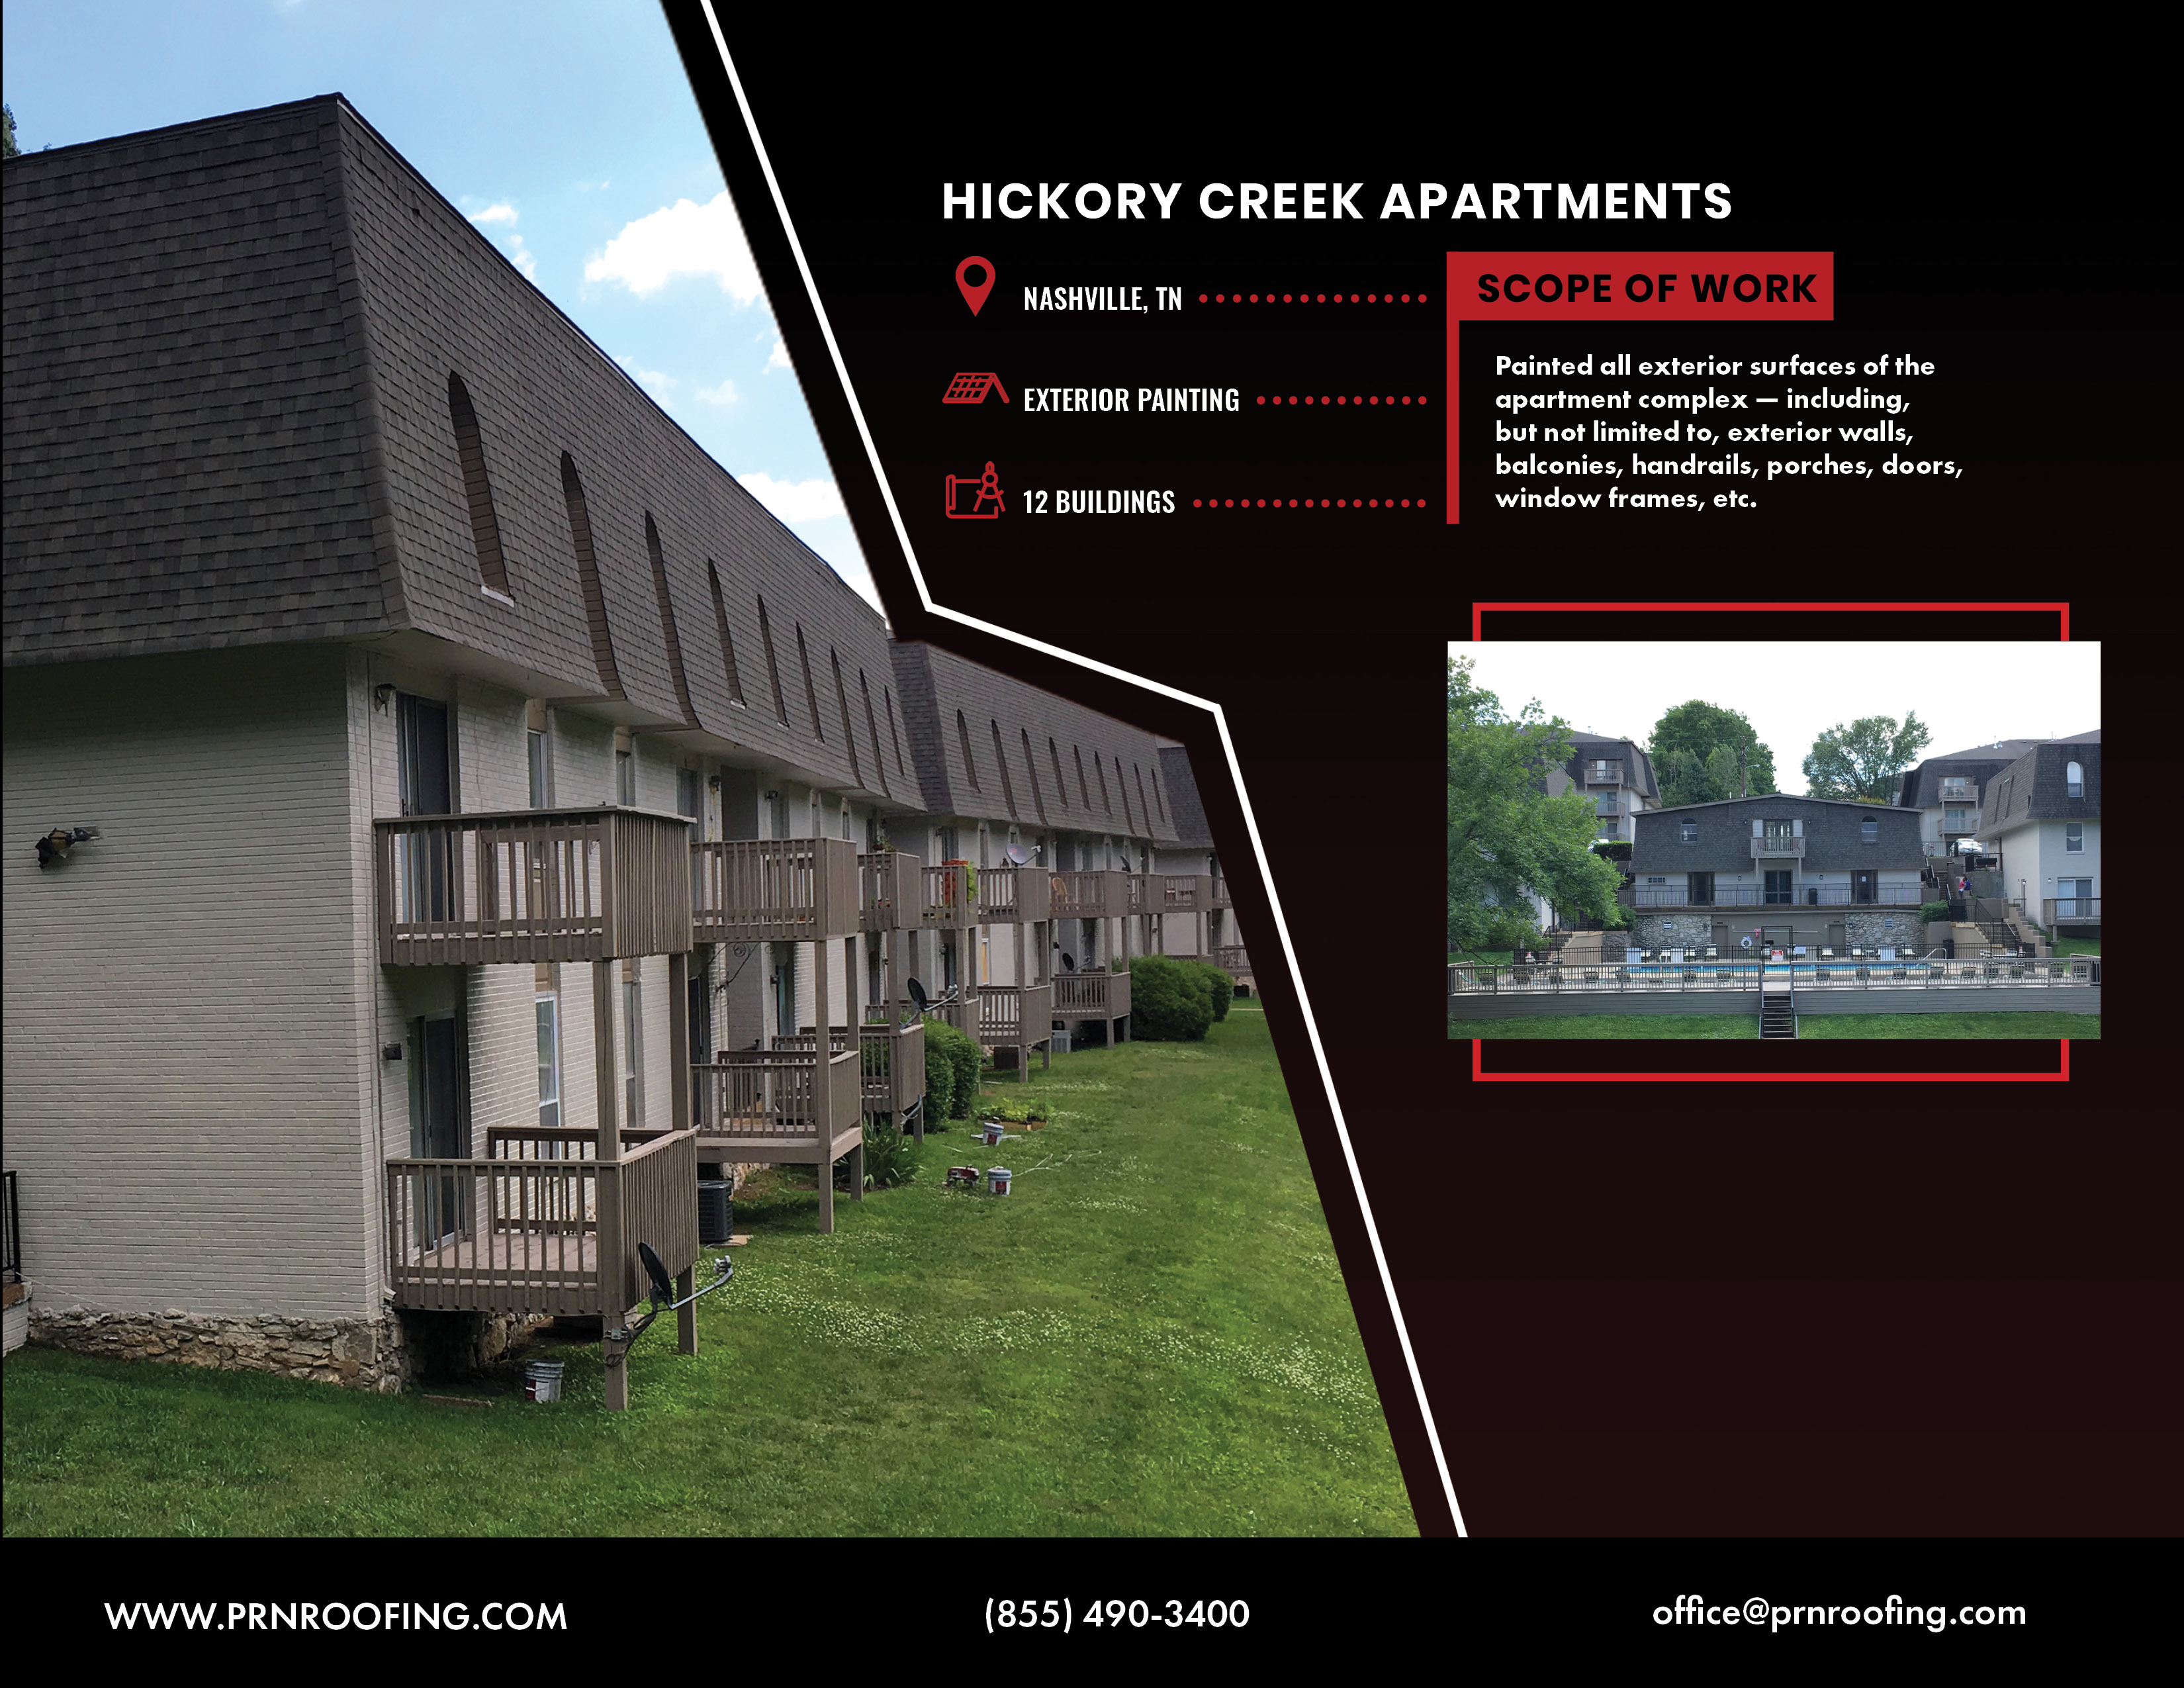 Projects Work From Our Expert Roofers Prn Roofing